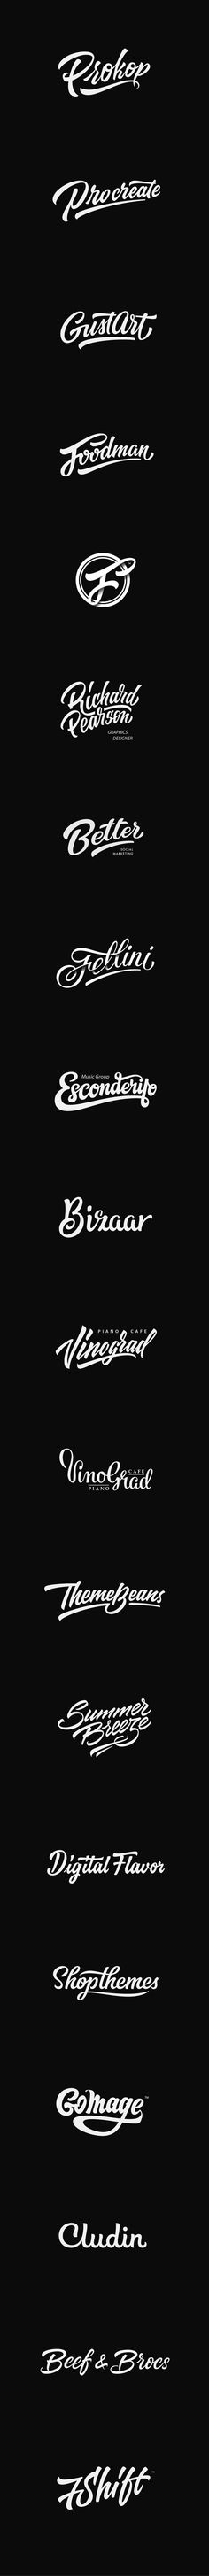 Lettering logotypes , compilation 1 by Евгений Тутов, via Behance